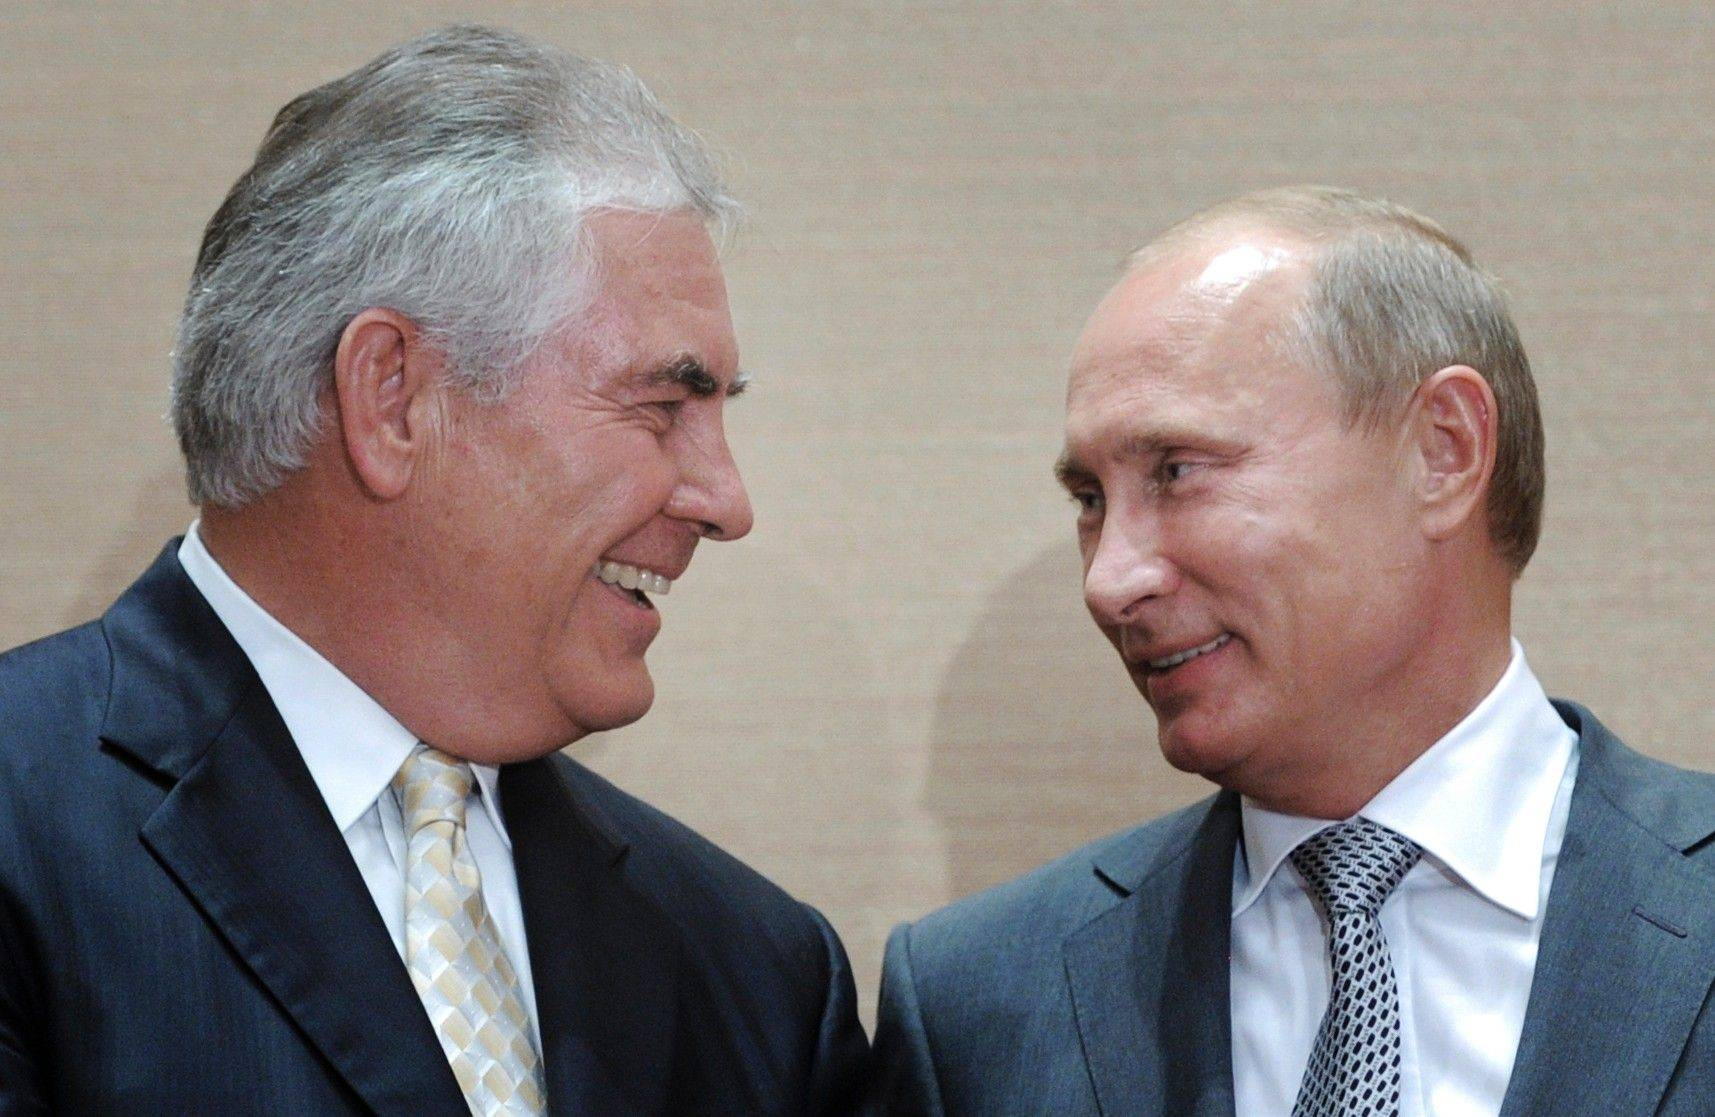 Russian Prime Minister Vladimir Putin, right, and Rex Tillerson, ExxonMobil's chief executive smile during a signing ceremony in the Black Sea resort of Sochi, Russia, Tuesday.